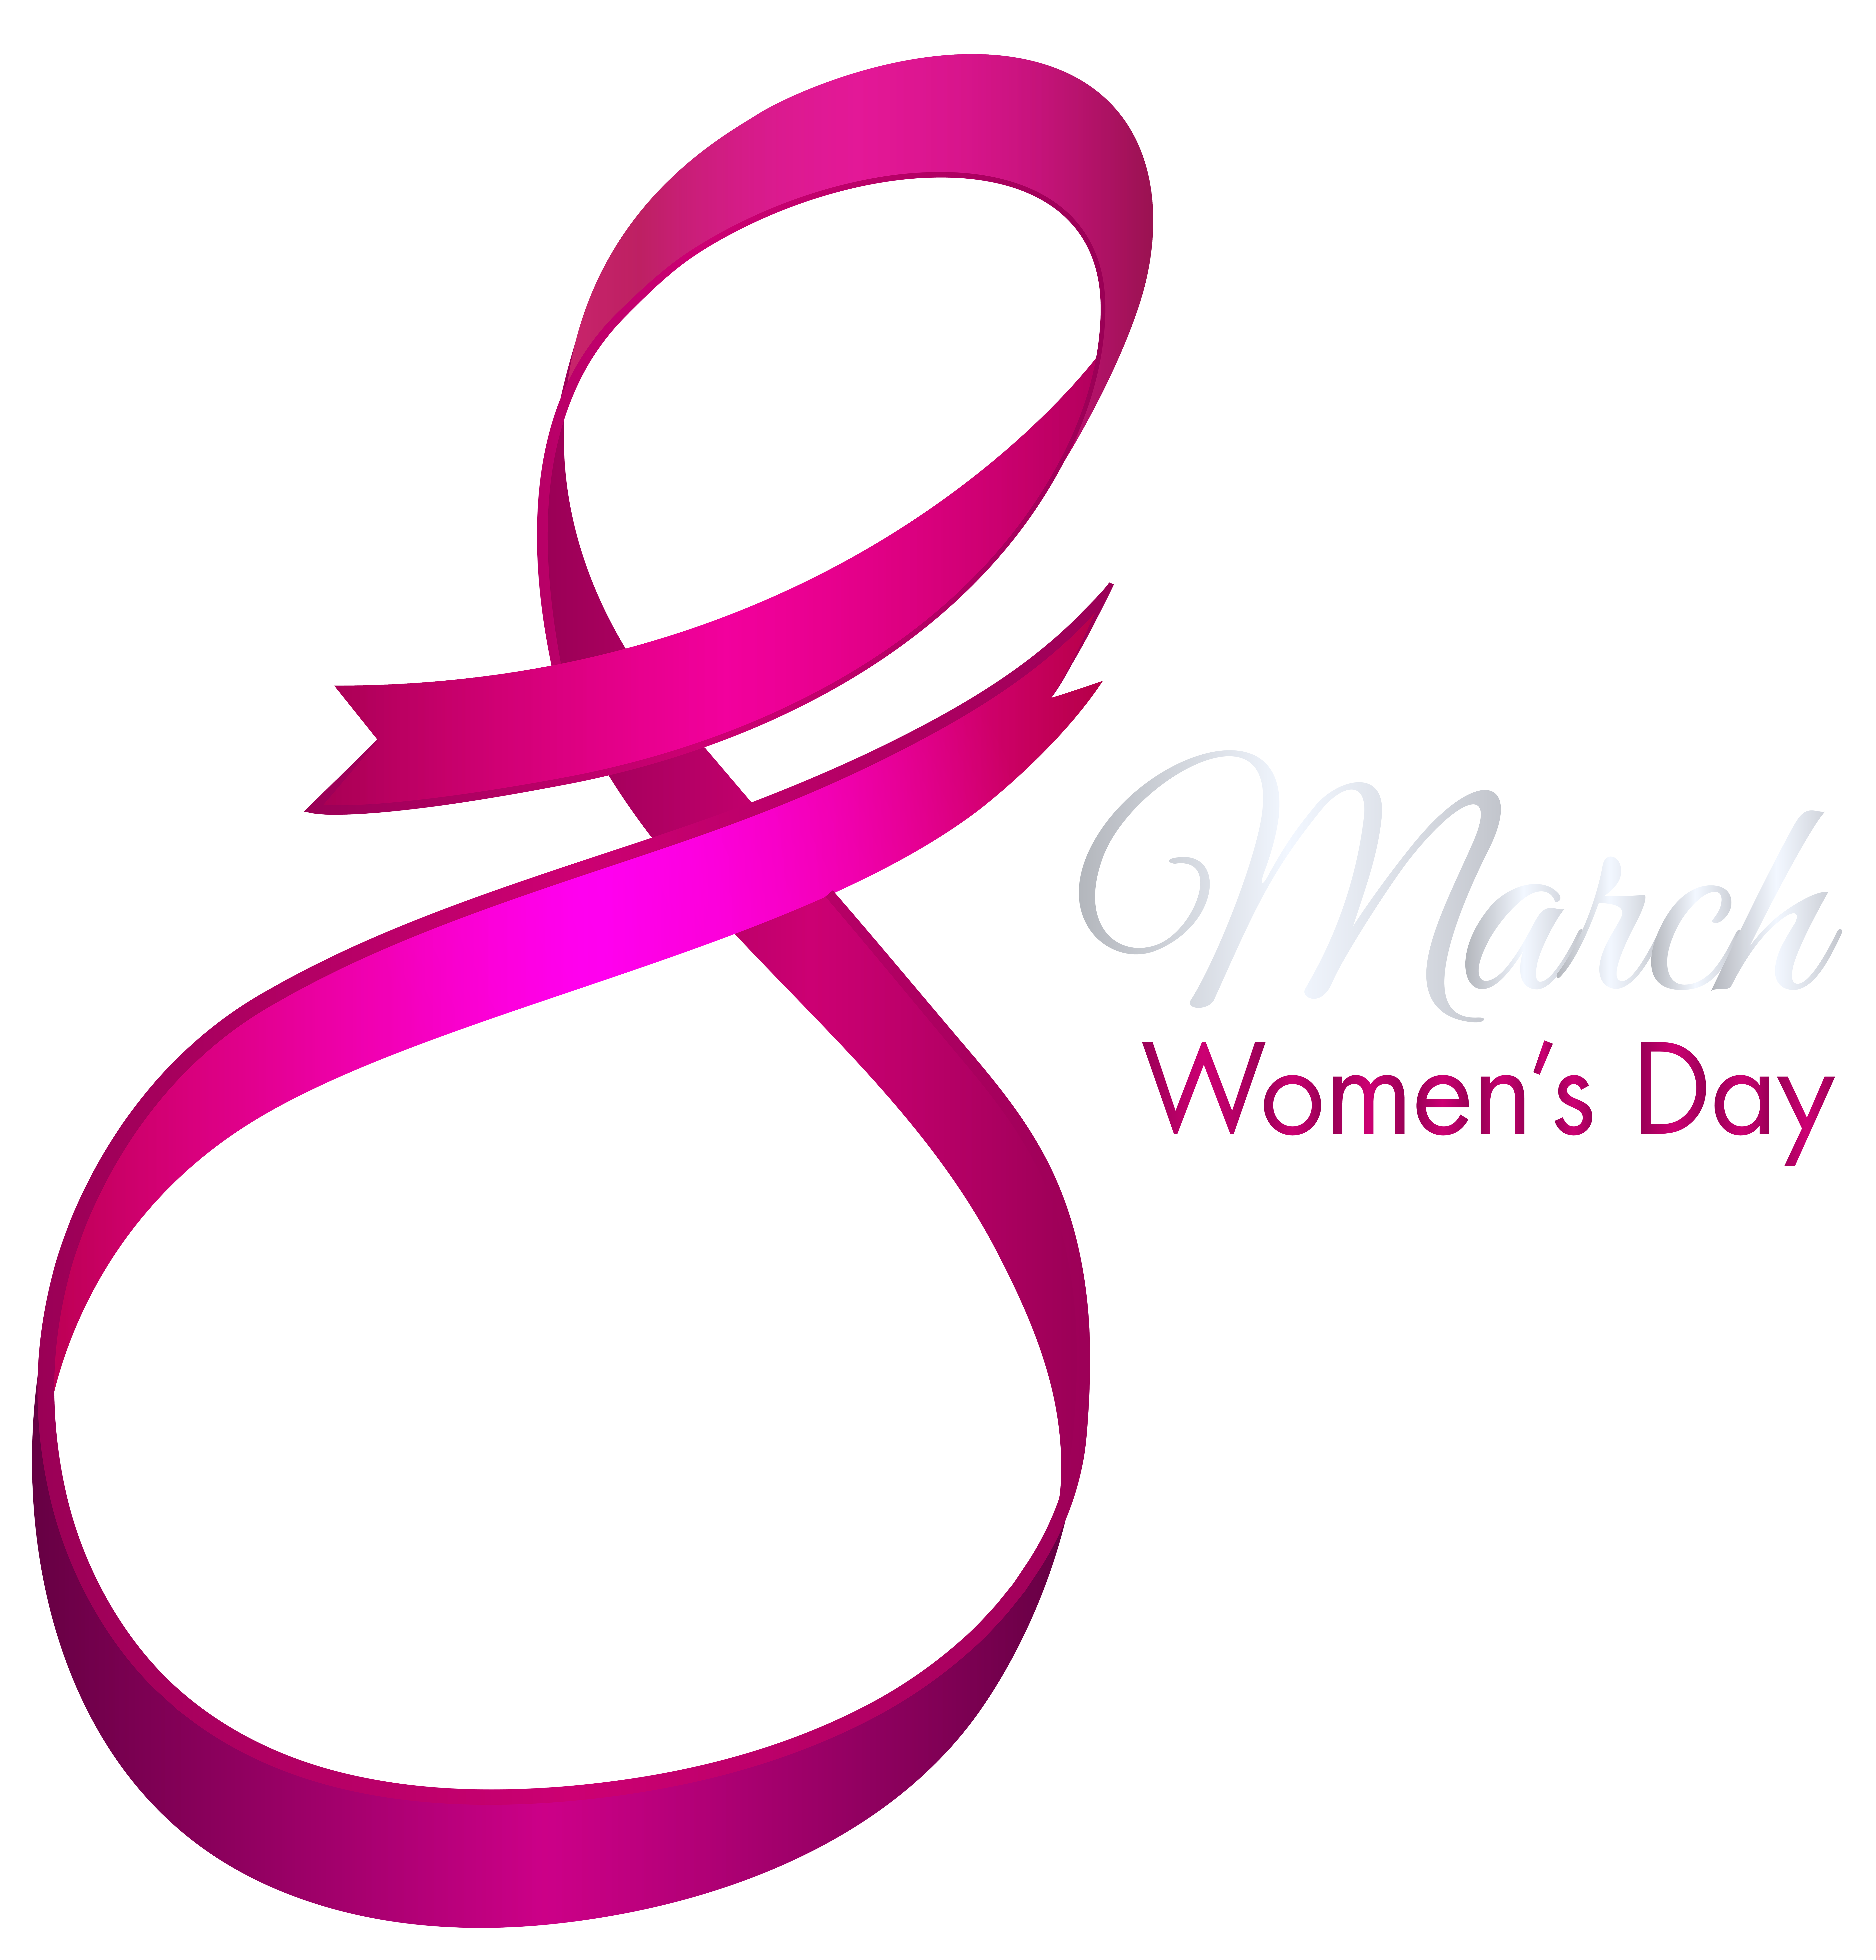 March womens day png. Piano clipart happy